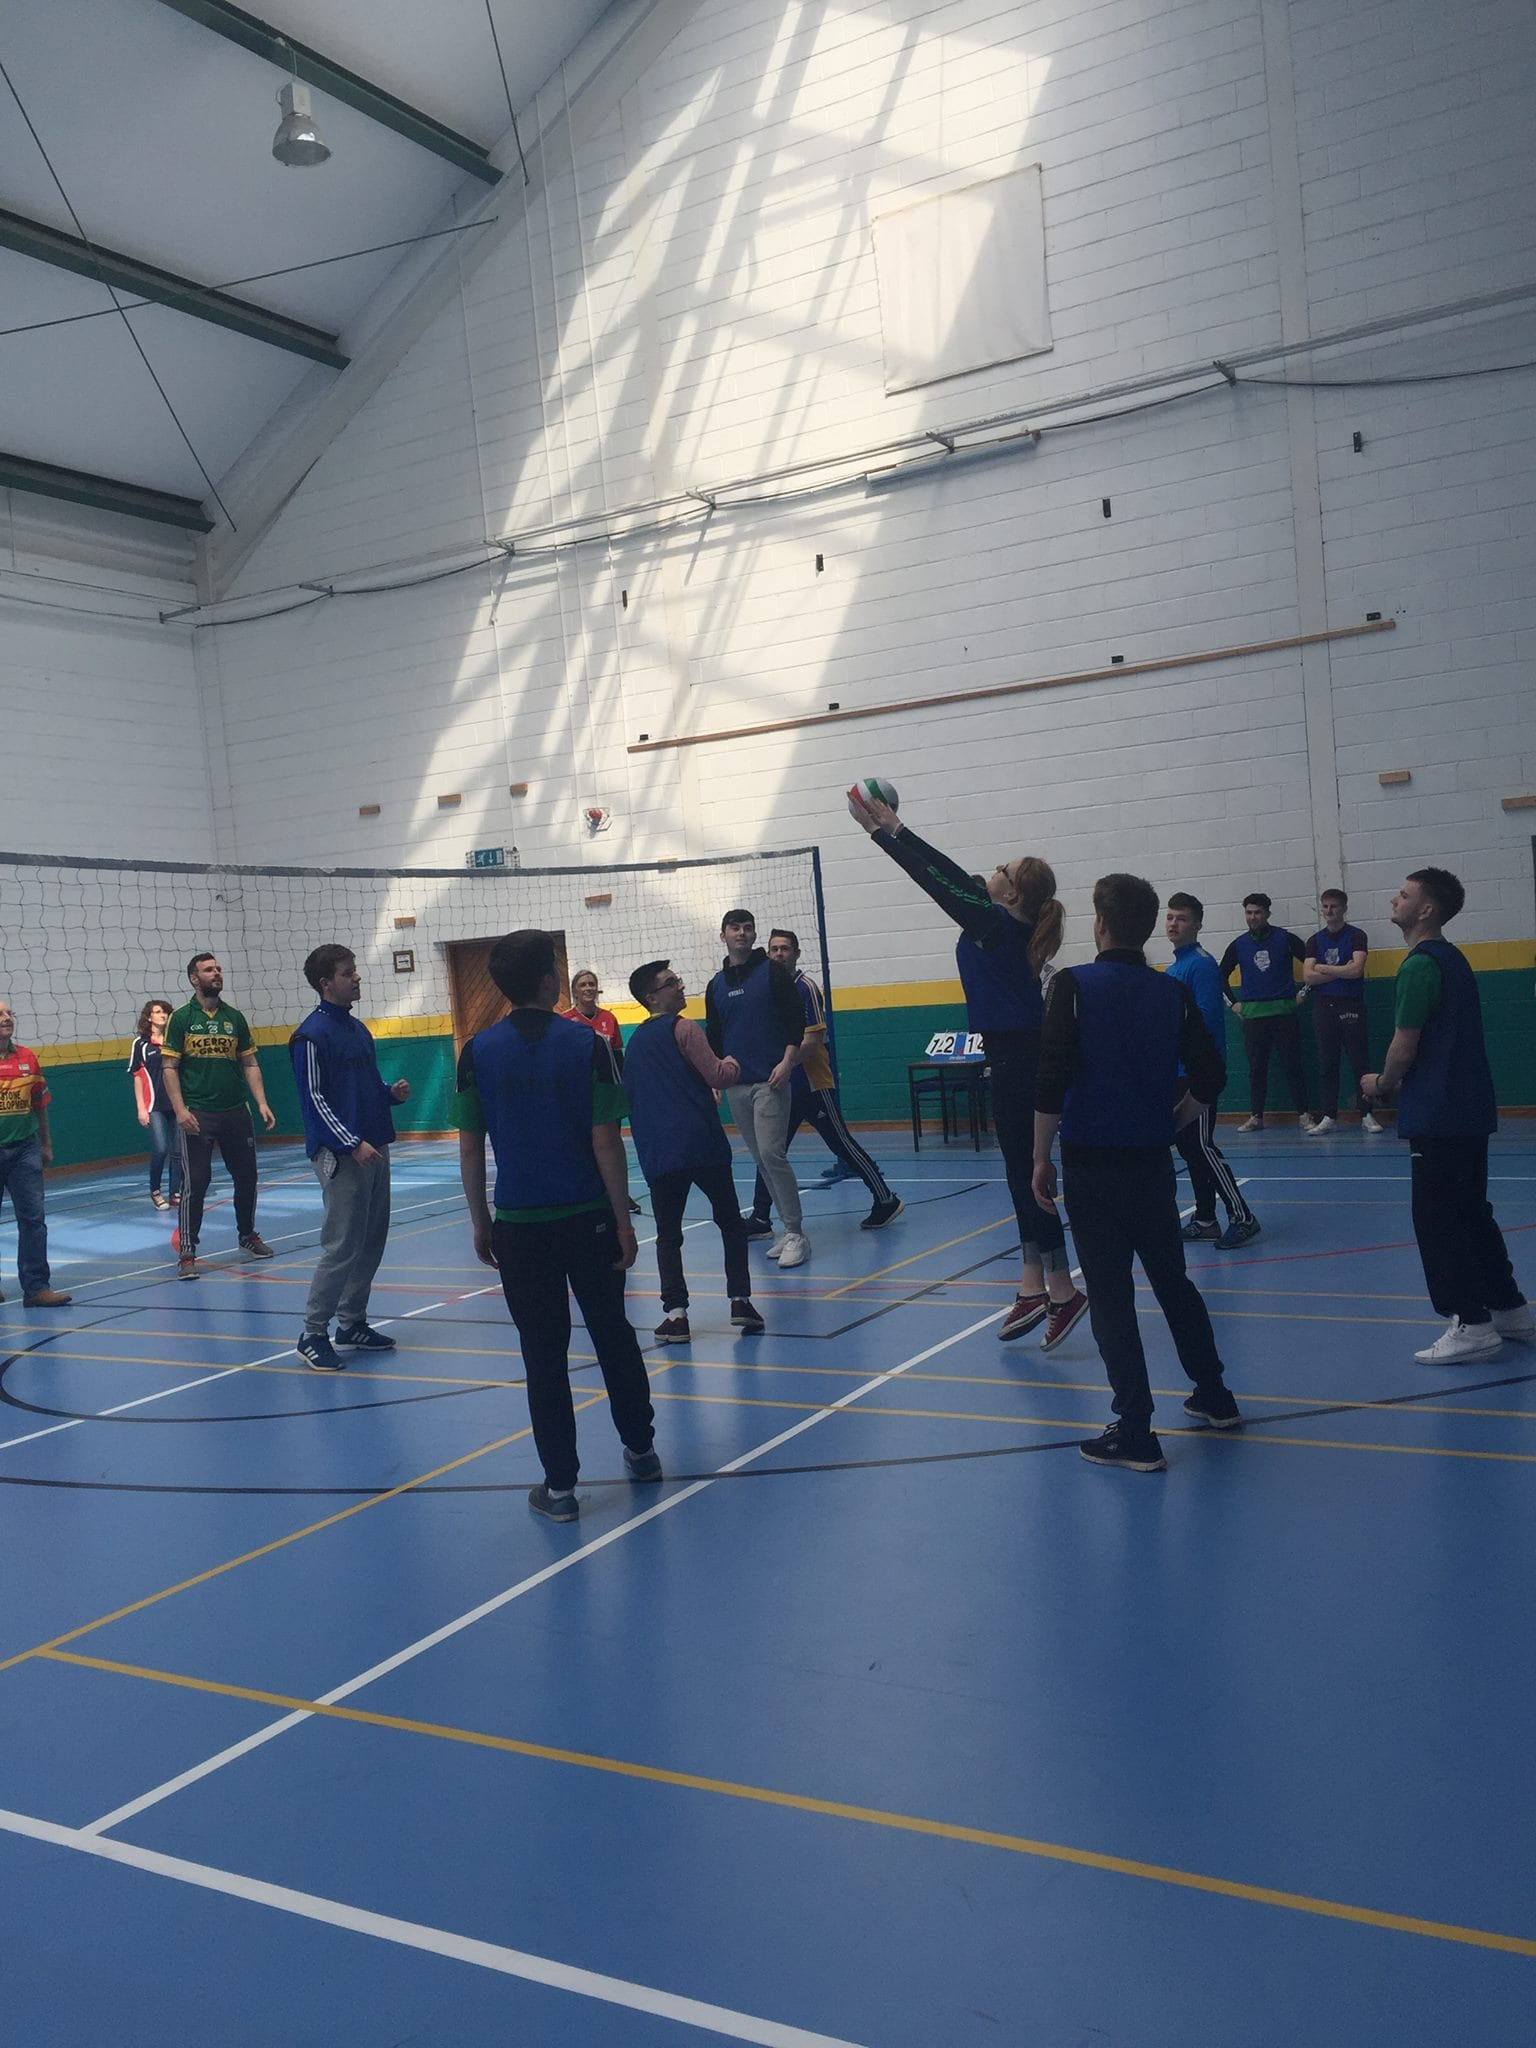 22nd April 2016: Desmond College Active Schools Week 2016: Teacher v Students Volleyball Match on Active Friday